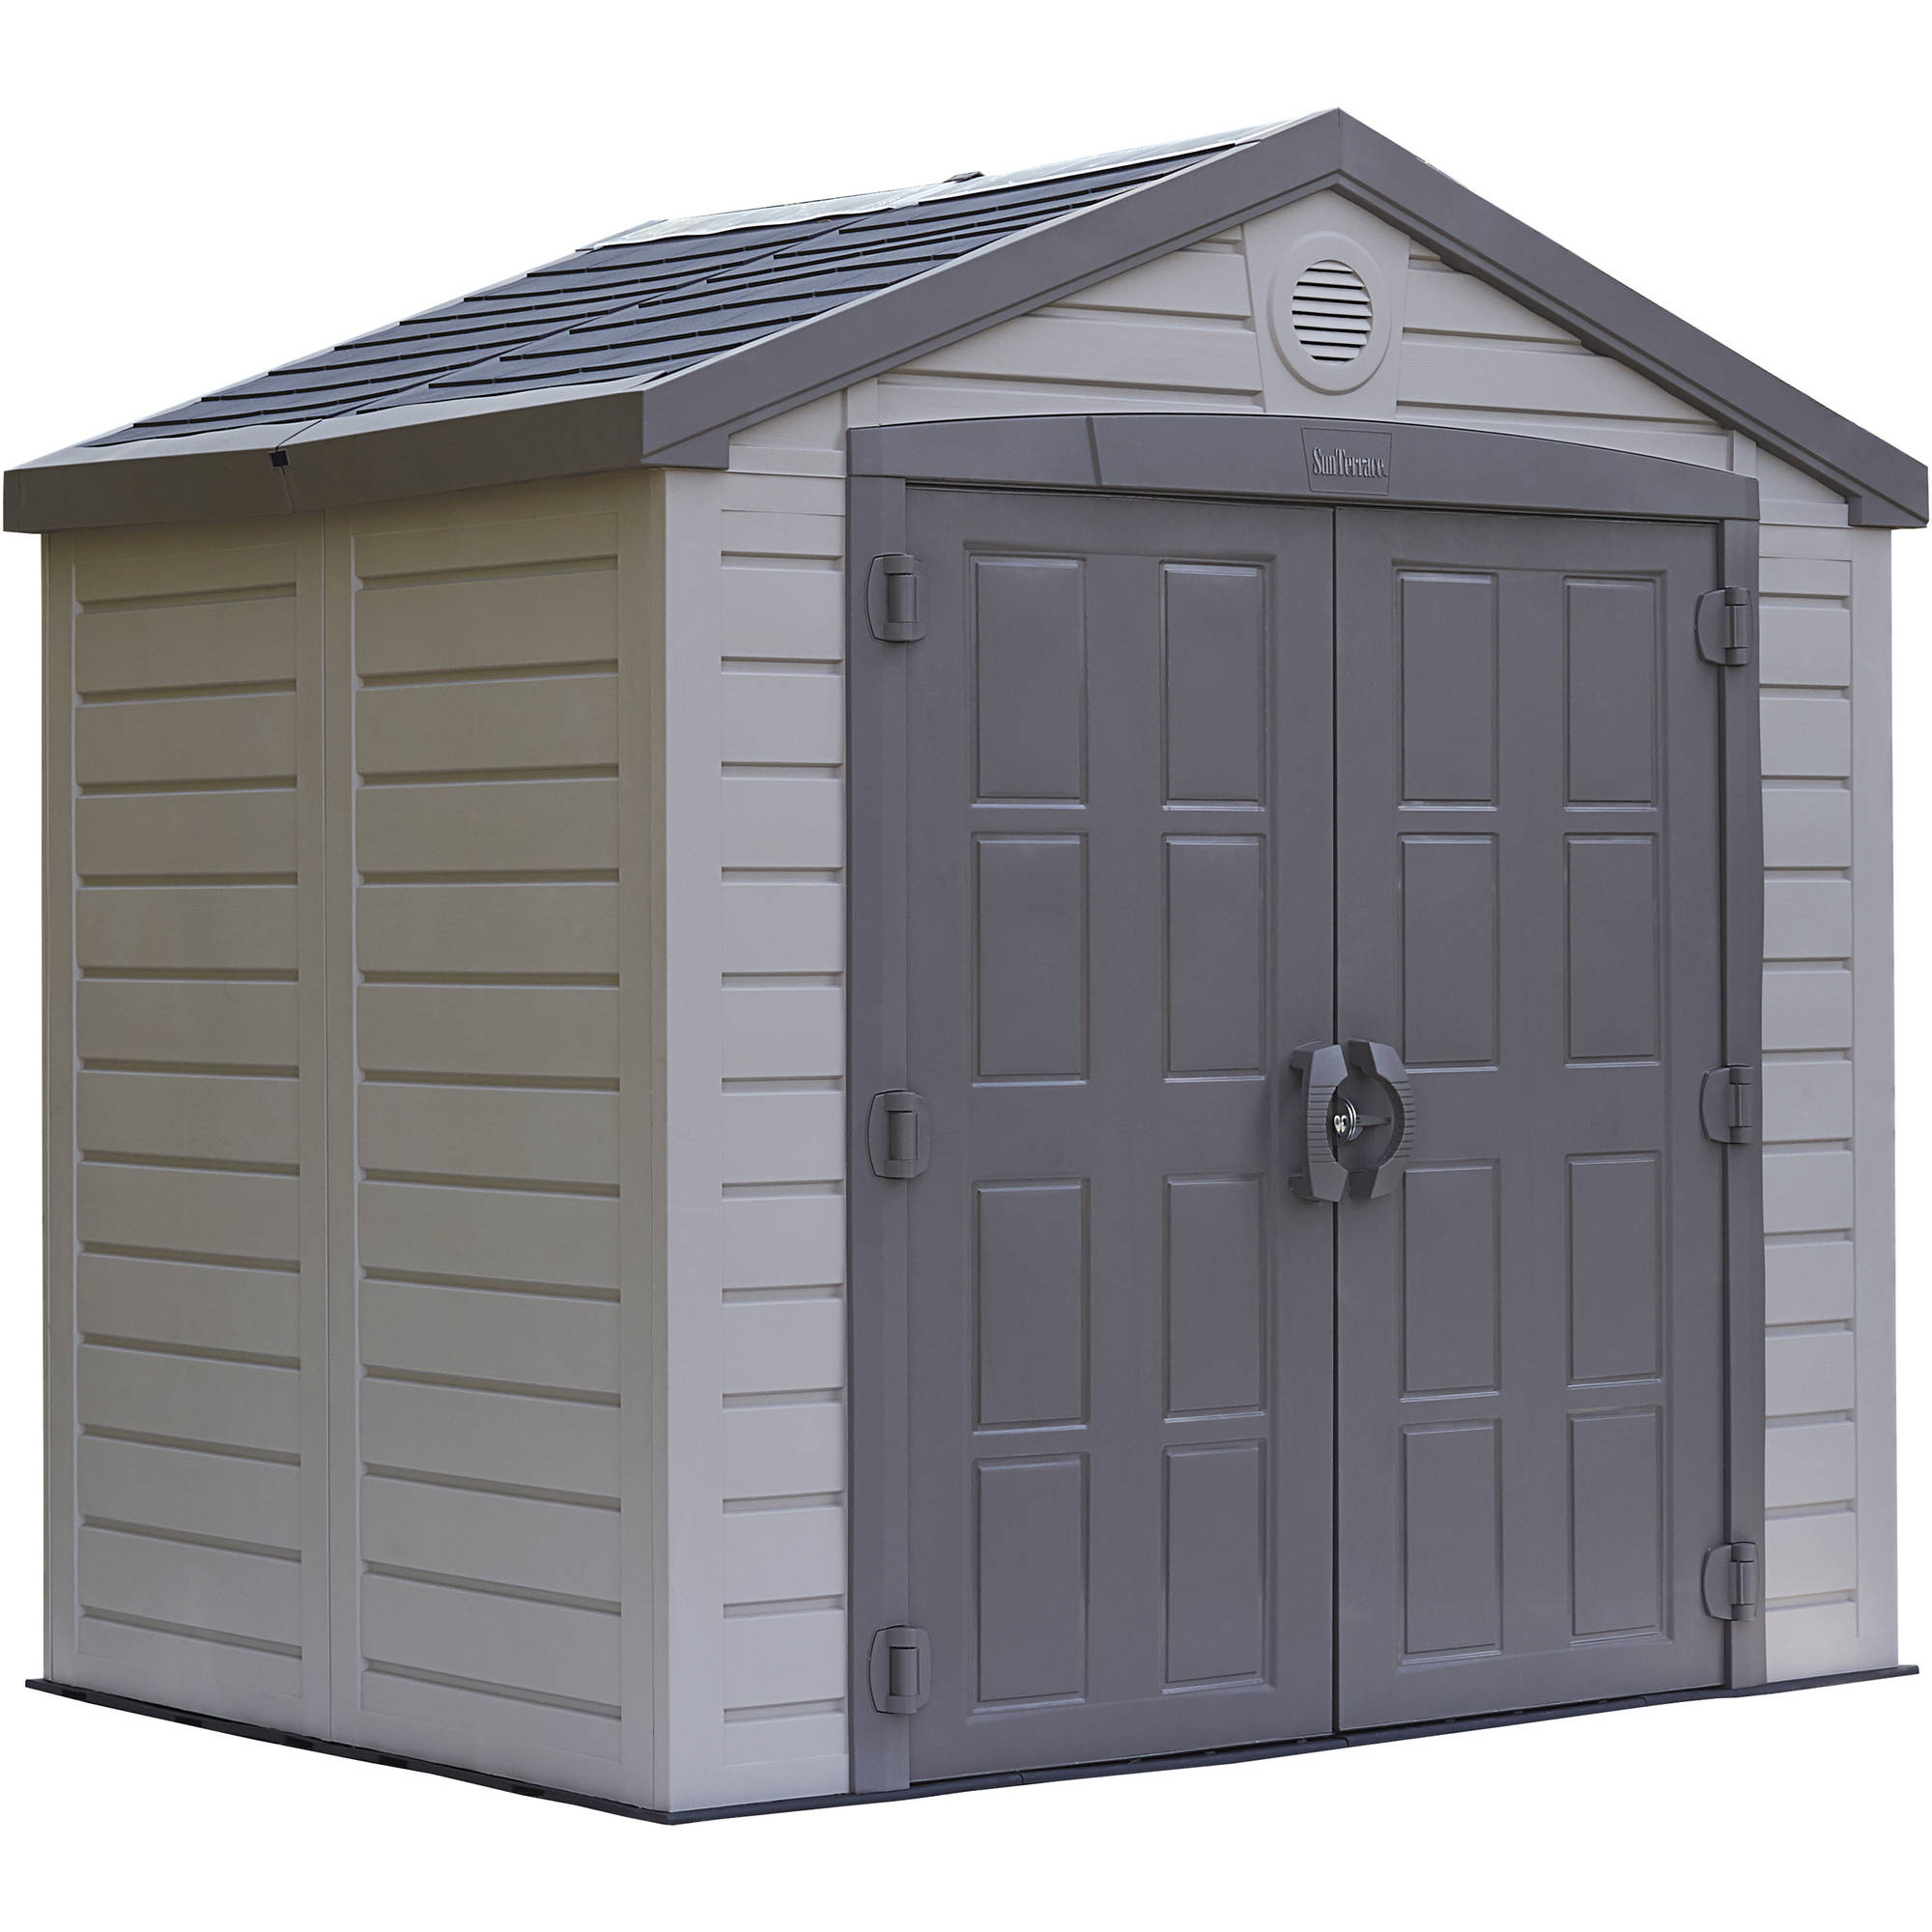 Keter 8' x 6' Sunterrace Resin Storage Shed, Beige